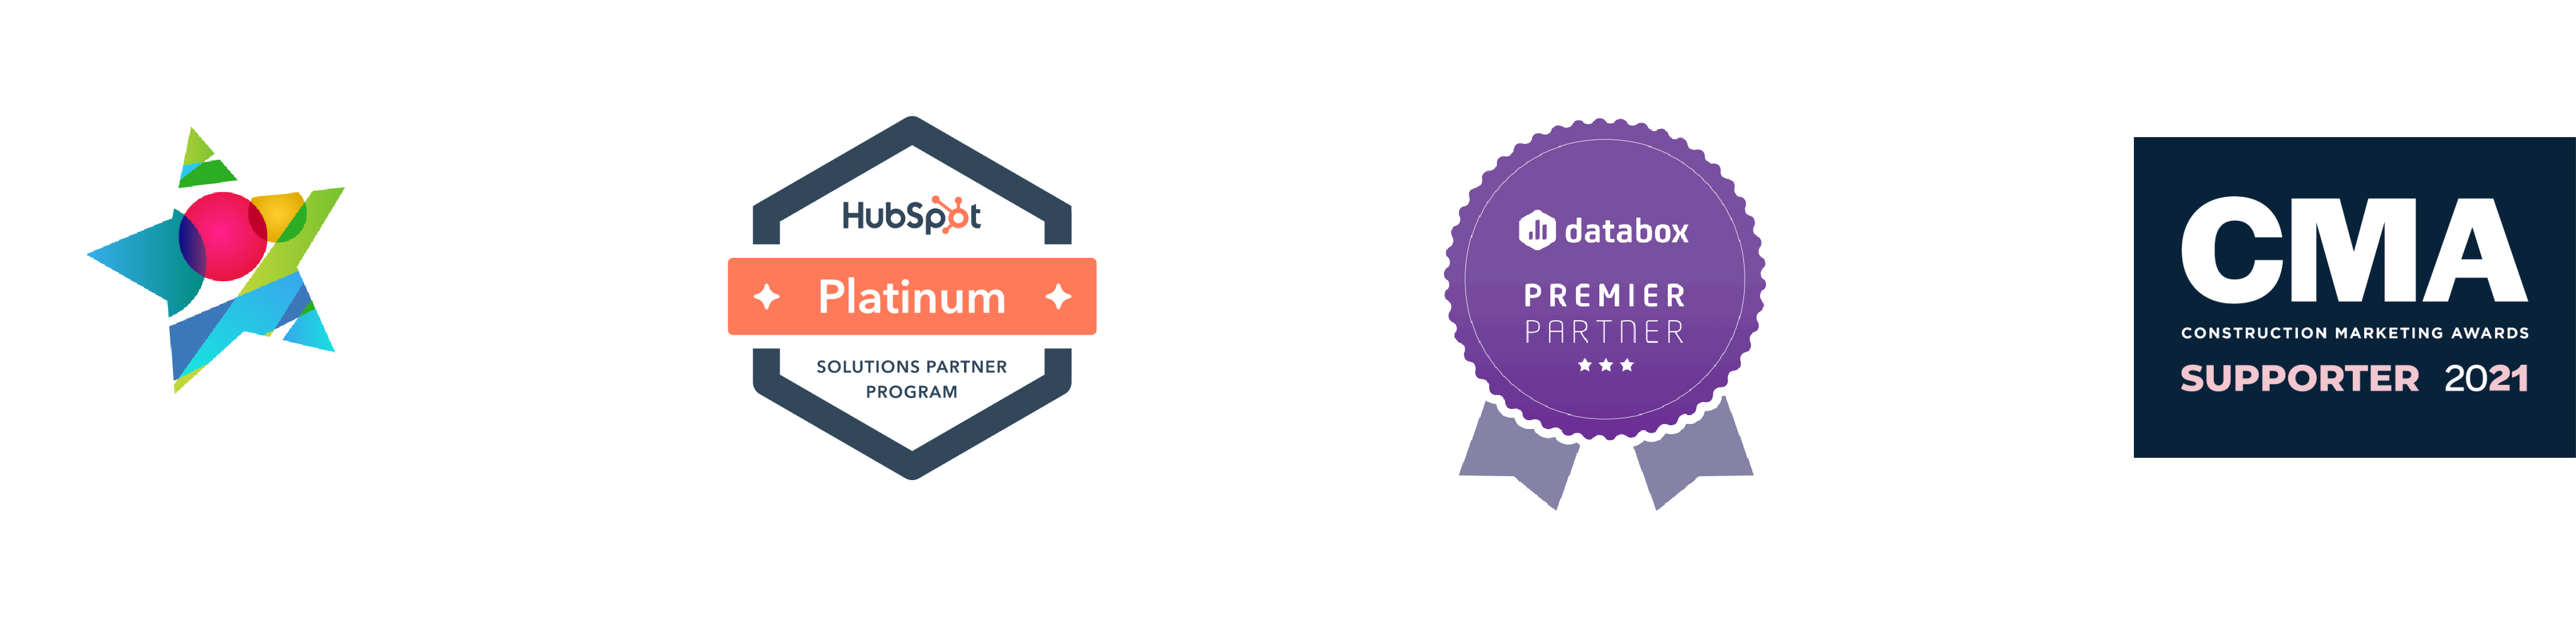 Insynth-marketing-hubspot-platinum-partners-databox-premier-partners-construction-marketing-awards-supporter